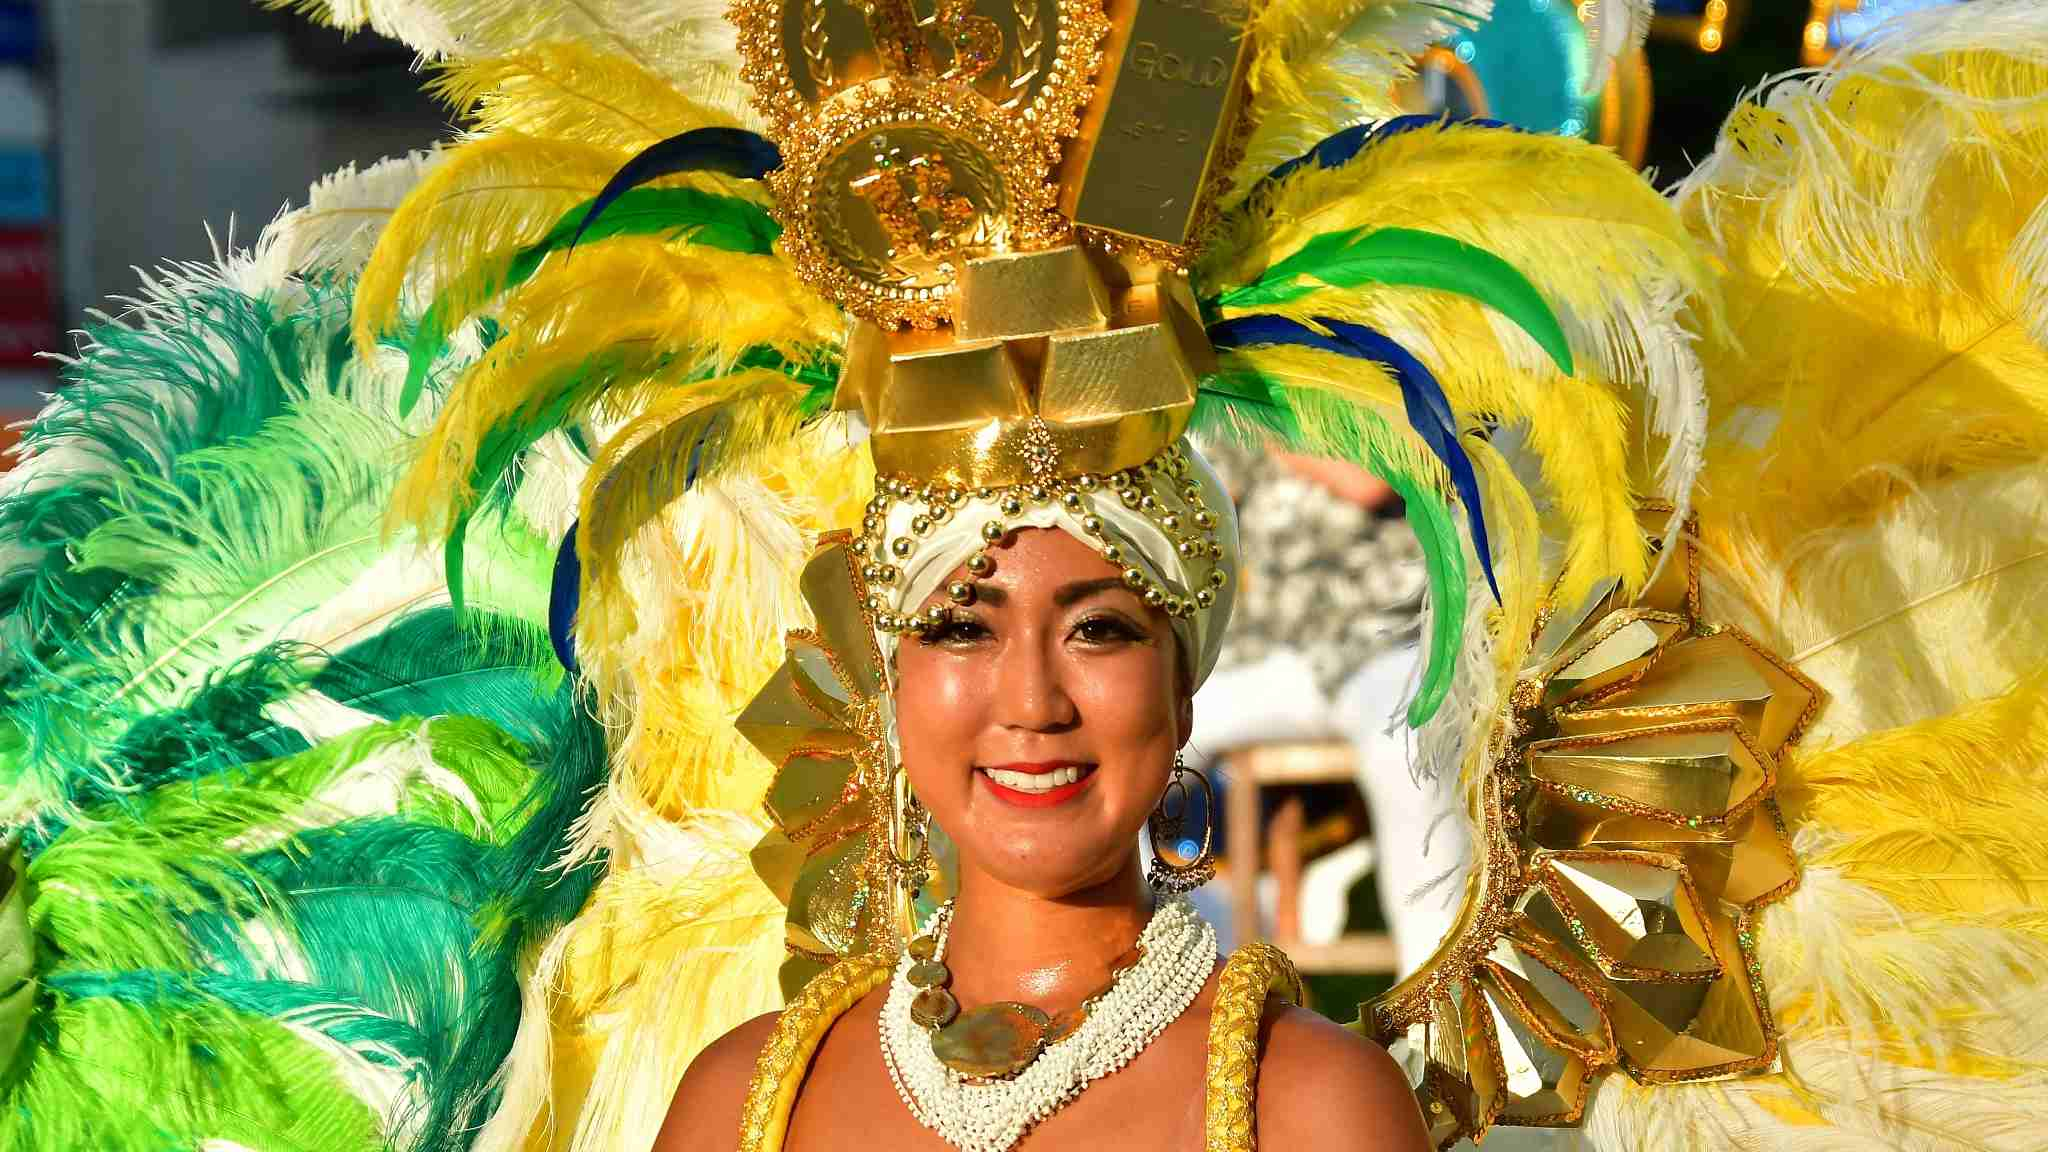 Move over, Rio – Tokyo is hosting its own Samba carnival